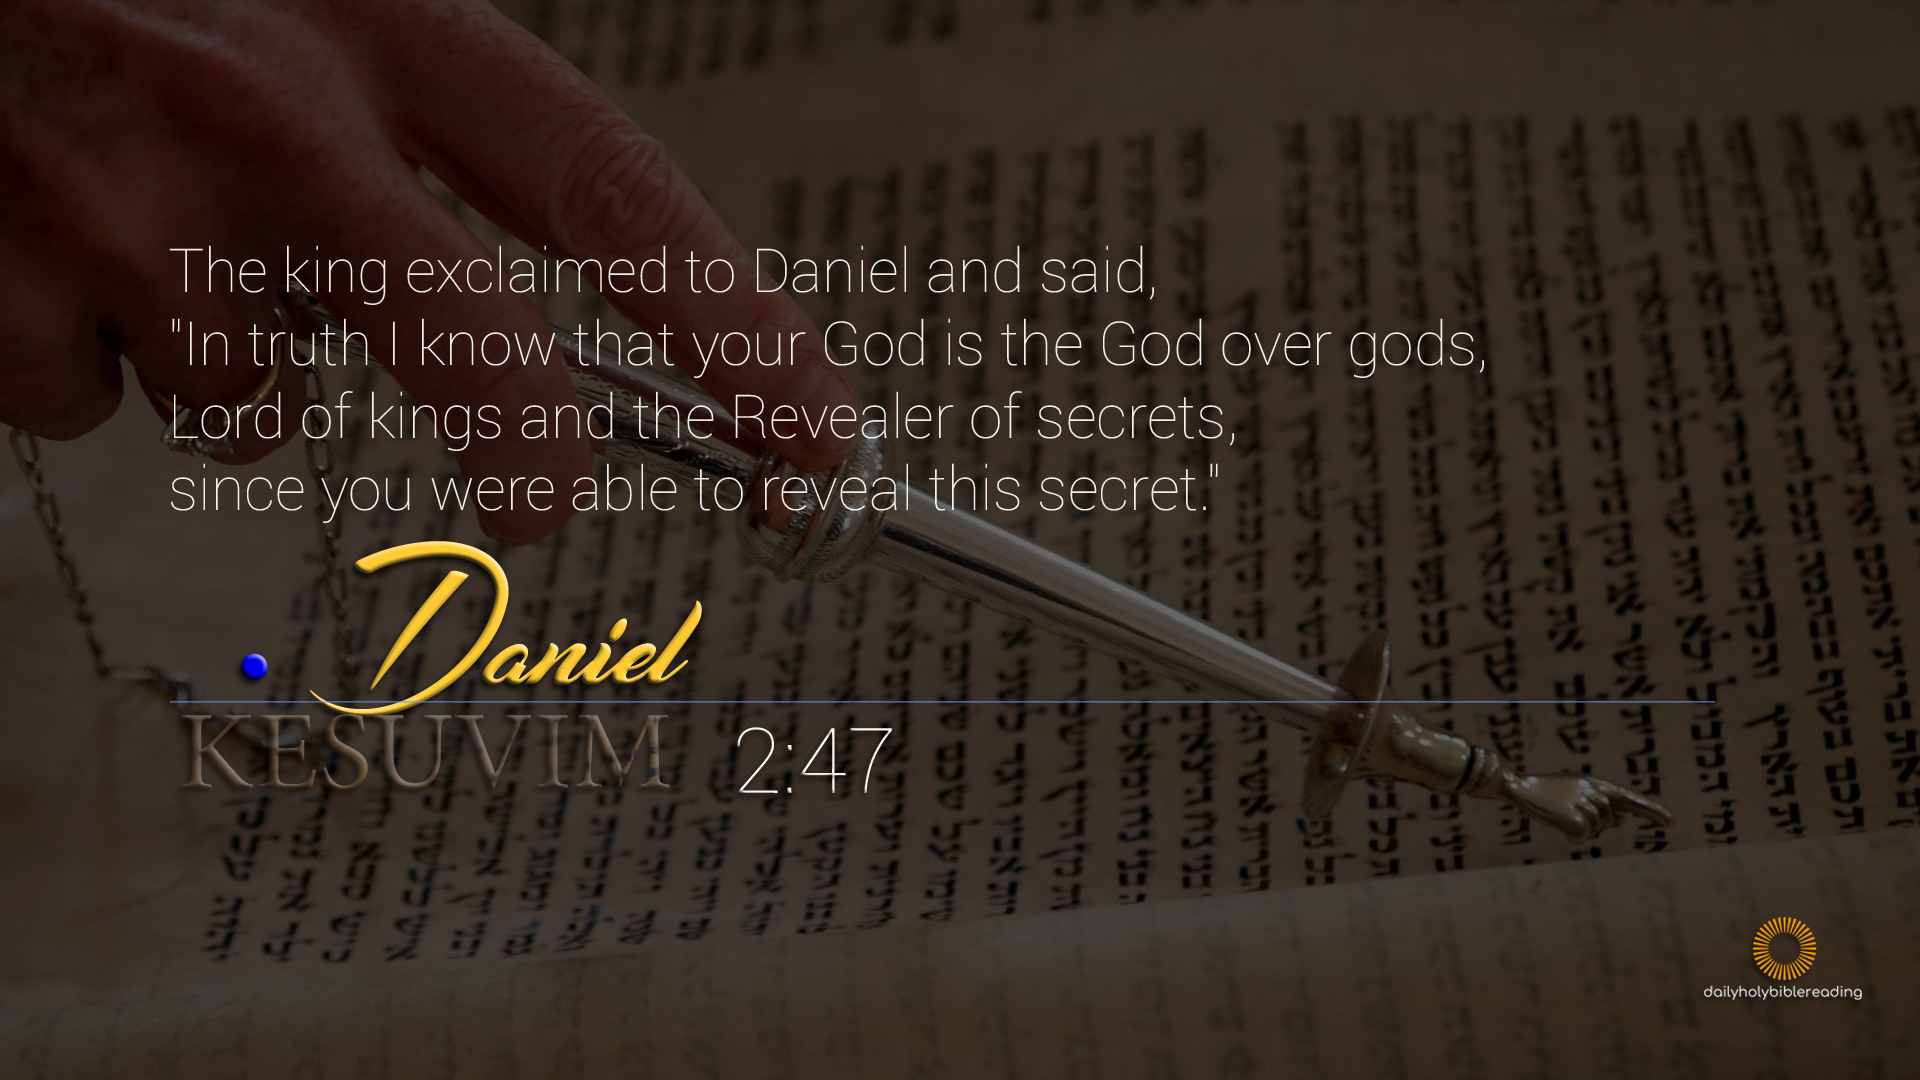 This Is TRUTH | NOT What I BELIEVE  But As GOD REVEALED